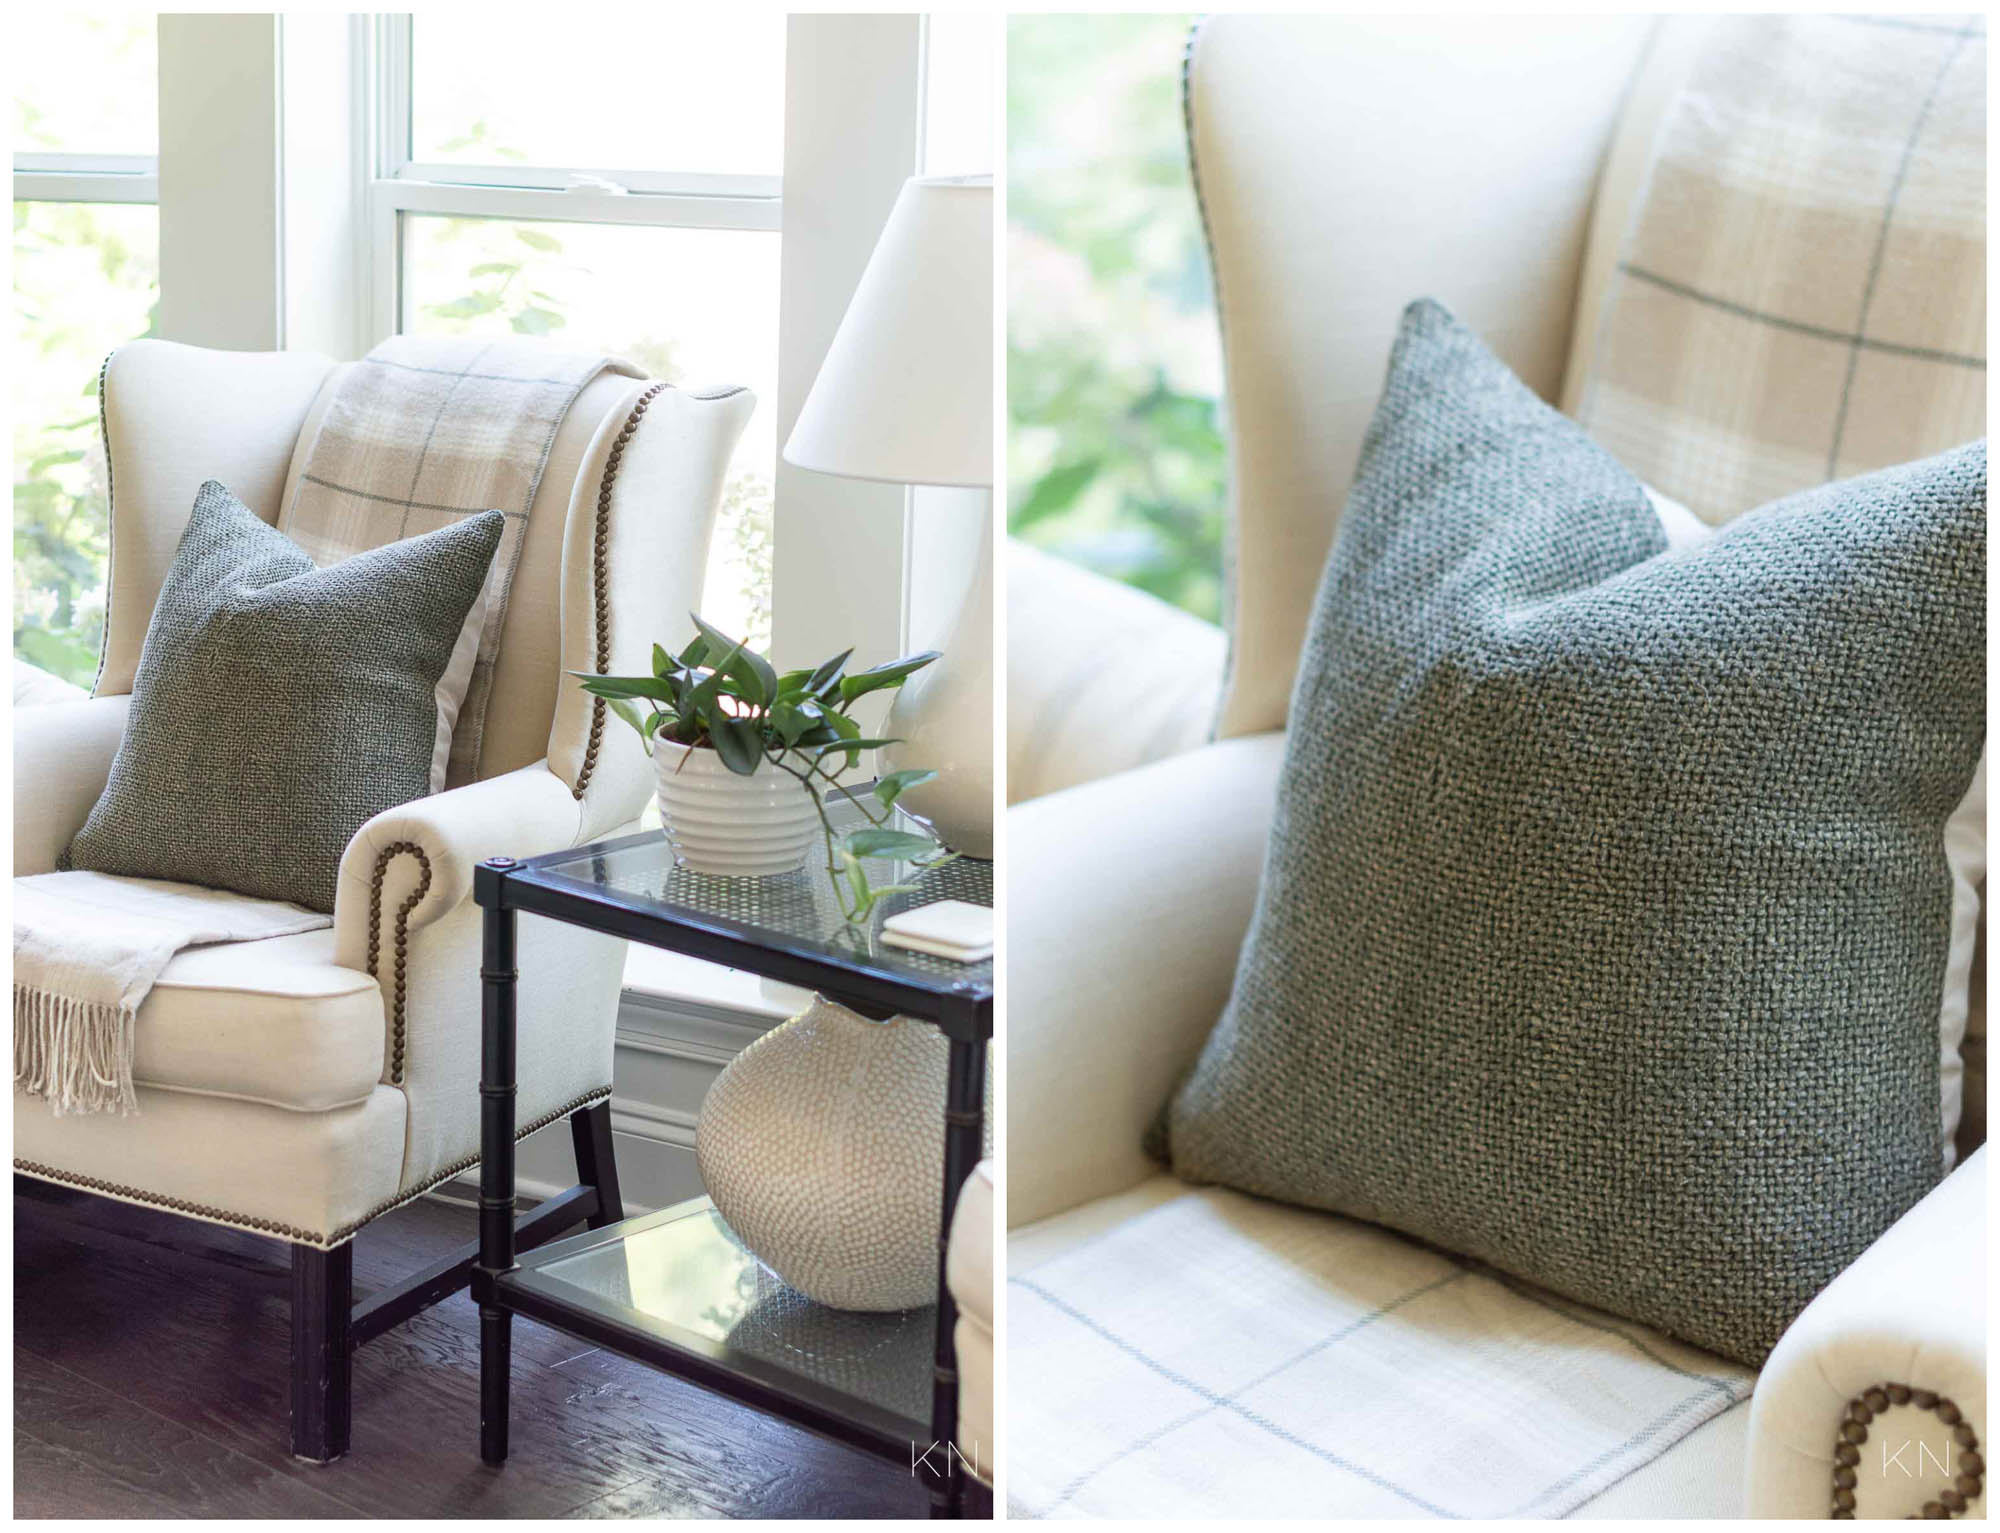 Styling a Sitting Area in the Living Room for Fall